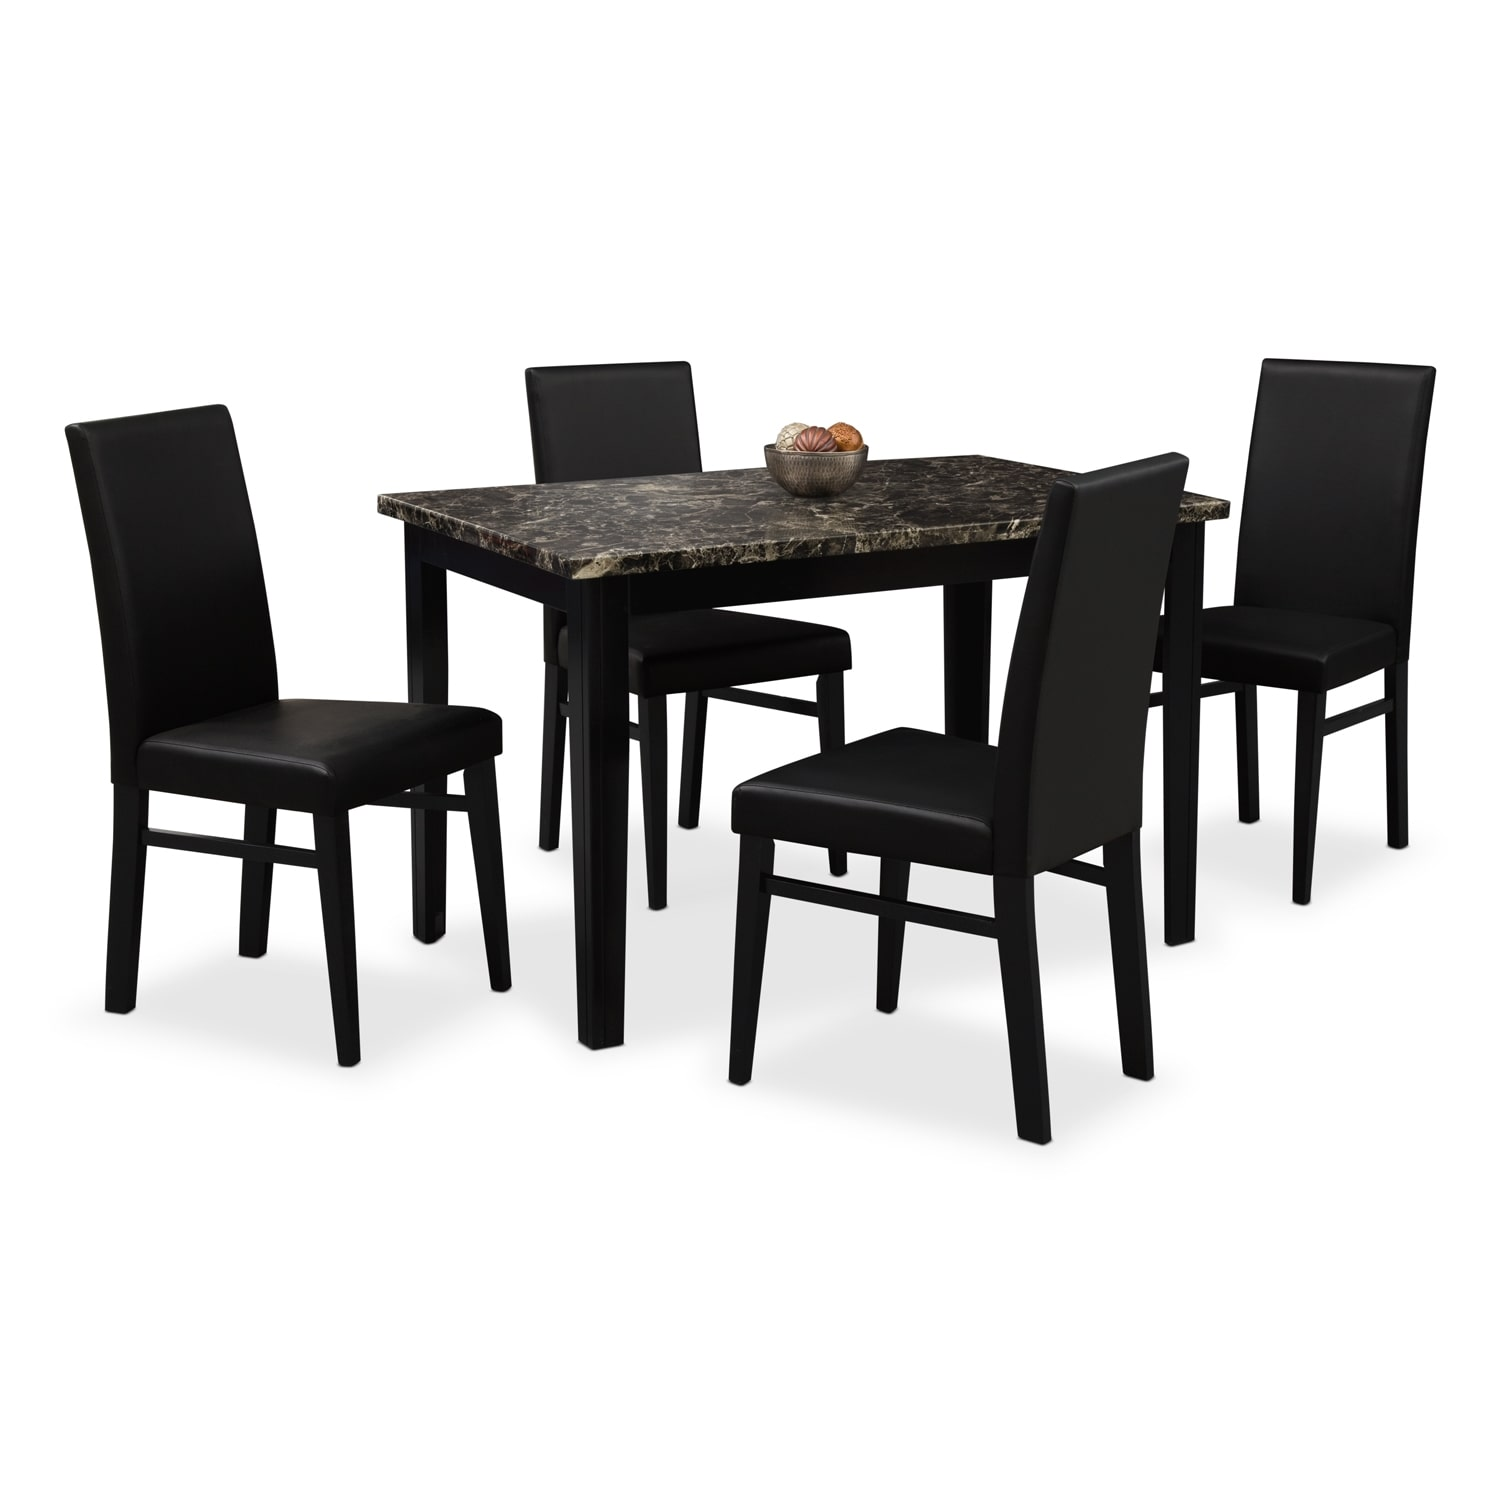 Table Furniture Set Black Dining Room Table And Chairs: Shadow Table And 4 Chairs - Black